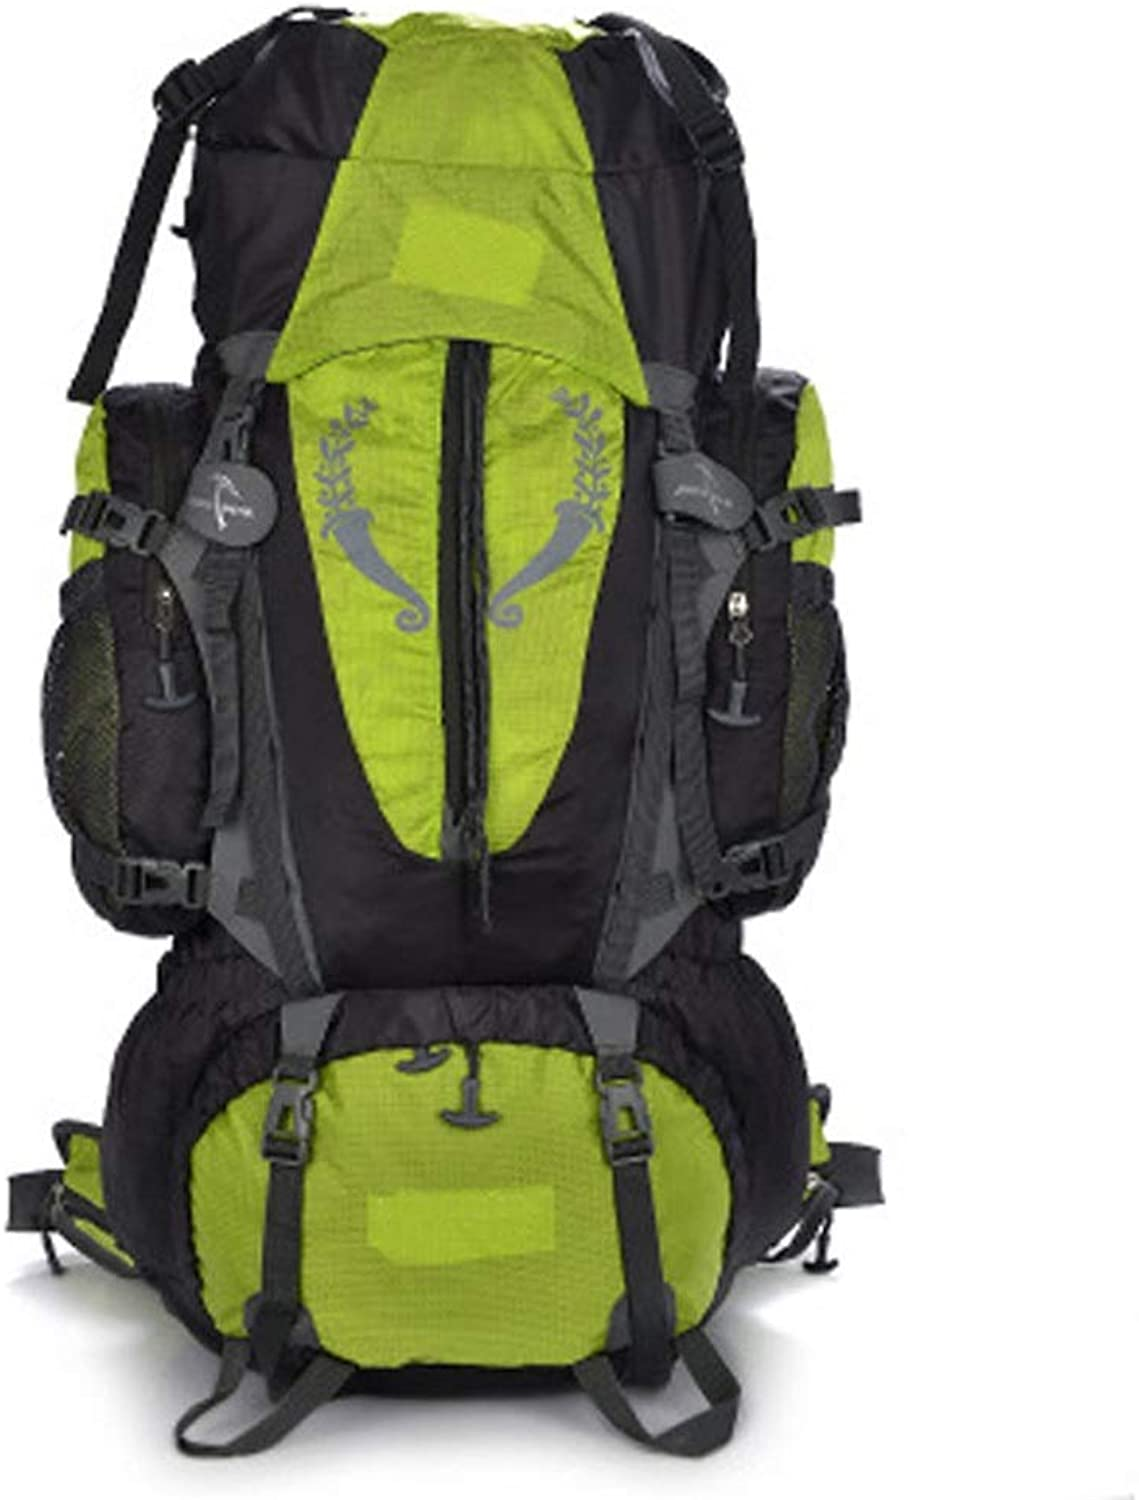 Men's Outdoor Sports Camping Waterproof Steel Frame Carrying 80L Large Capacity Mountaineering Bag Shoulder Travel Back (color   Green)